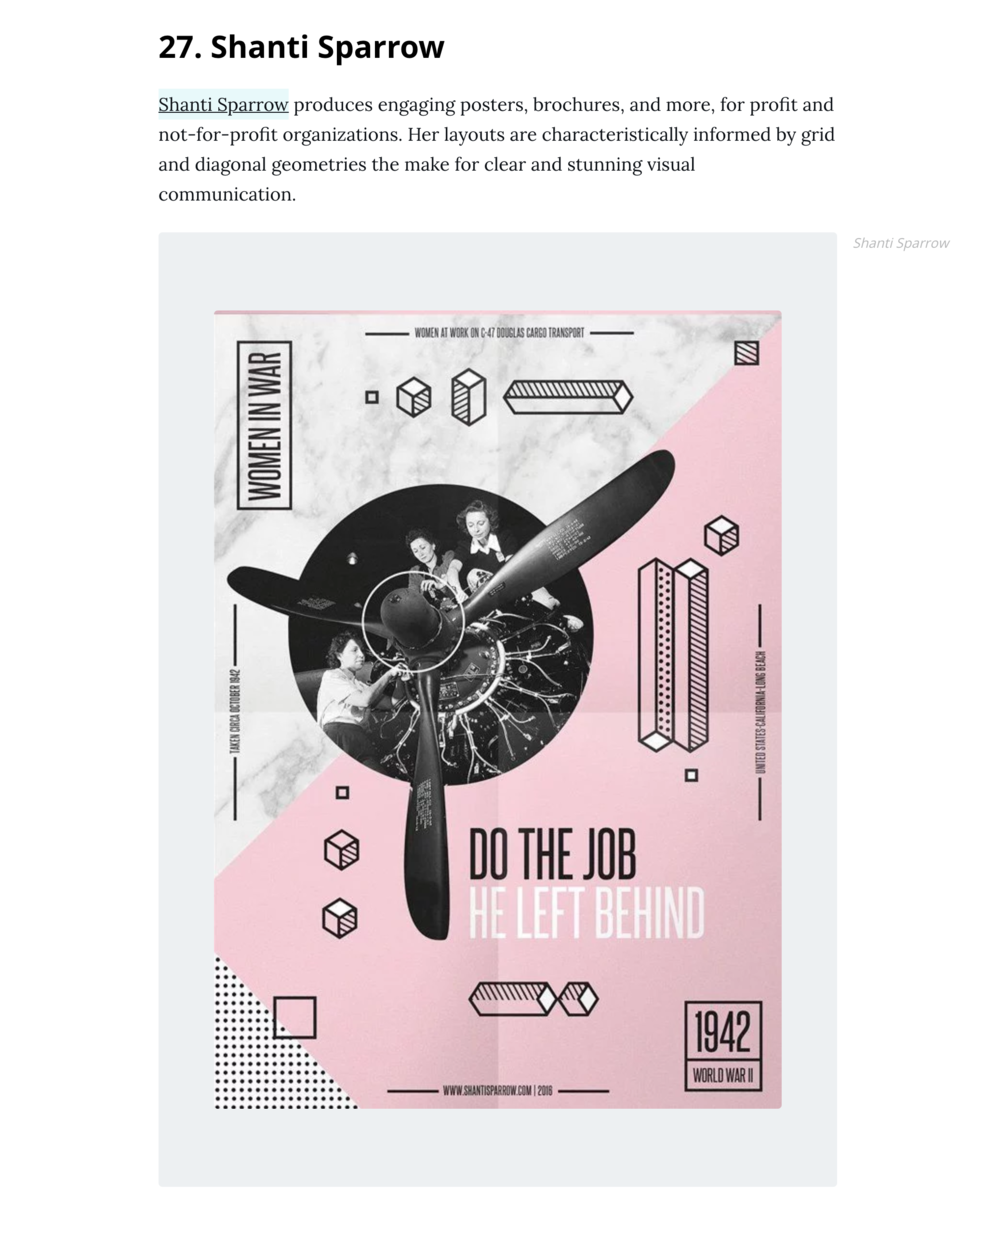 screencapture-canva-learn-women-graphic-designers-2018-08-11-19_27_08-2.png